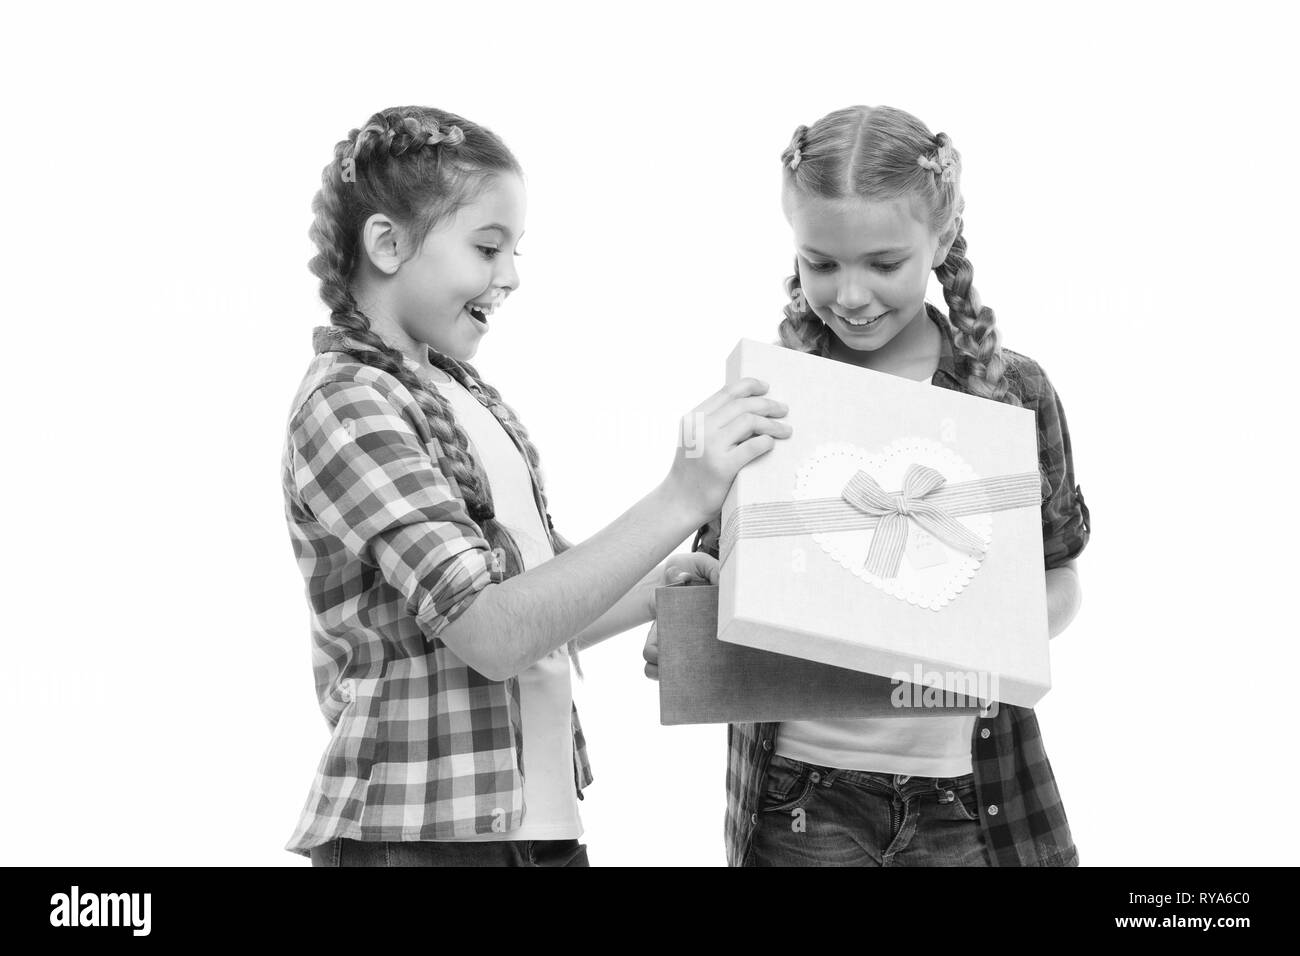 Kids little girls with braids hairstyle hold gift box. Children excited about unpacking gift. Small cute girls sisters received holiday gift. Dreams c - Stock Image